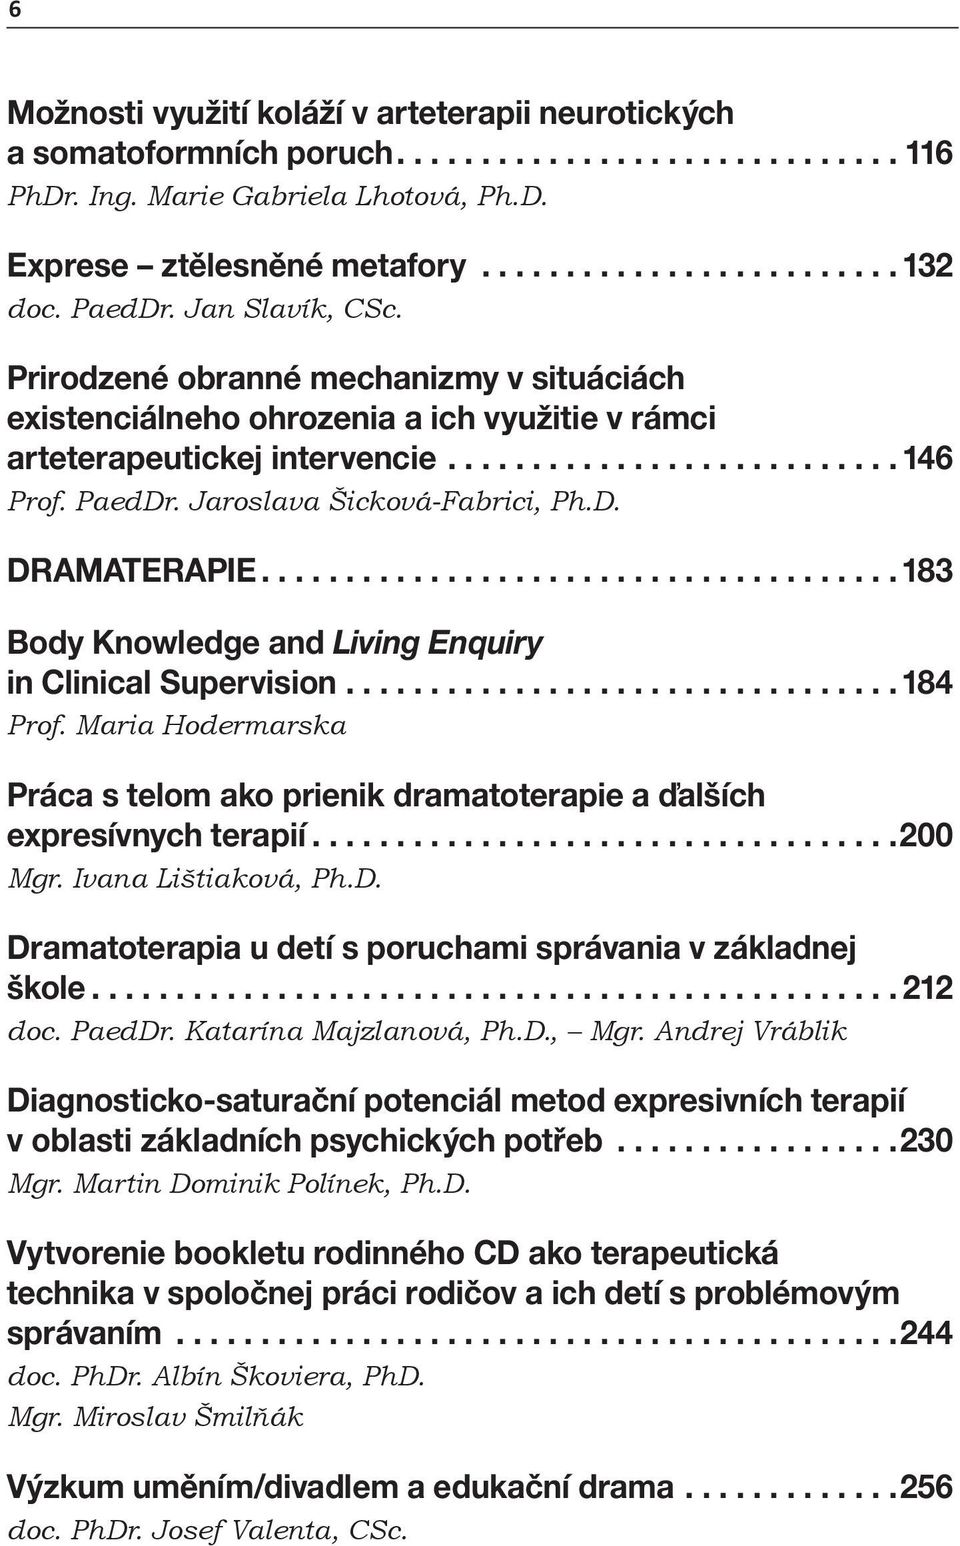 Jaroslava Šicková-Fabrici, Ph.D. DRAMATERAPIE...................................... 183 Body Knowledge and Living Enquiry in Clinical Supervision................................. 184 Prof.